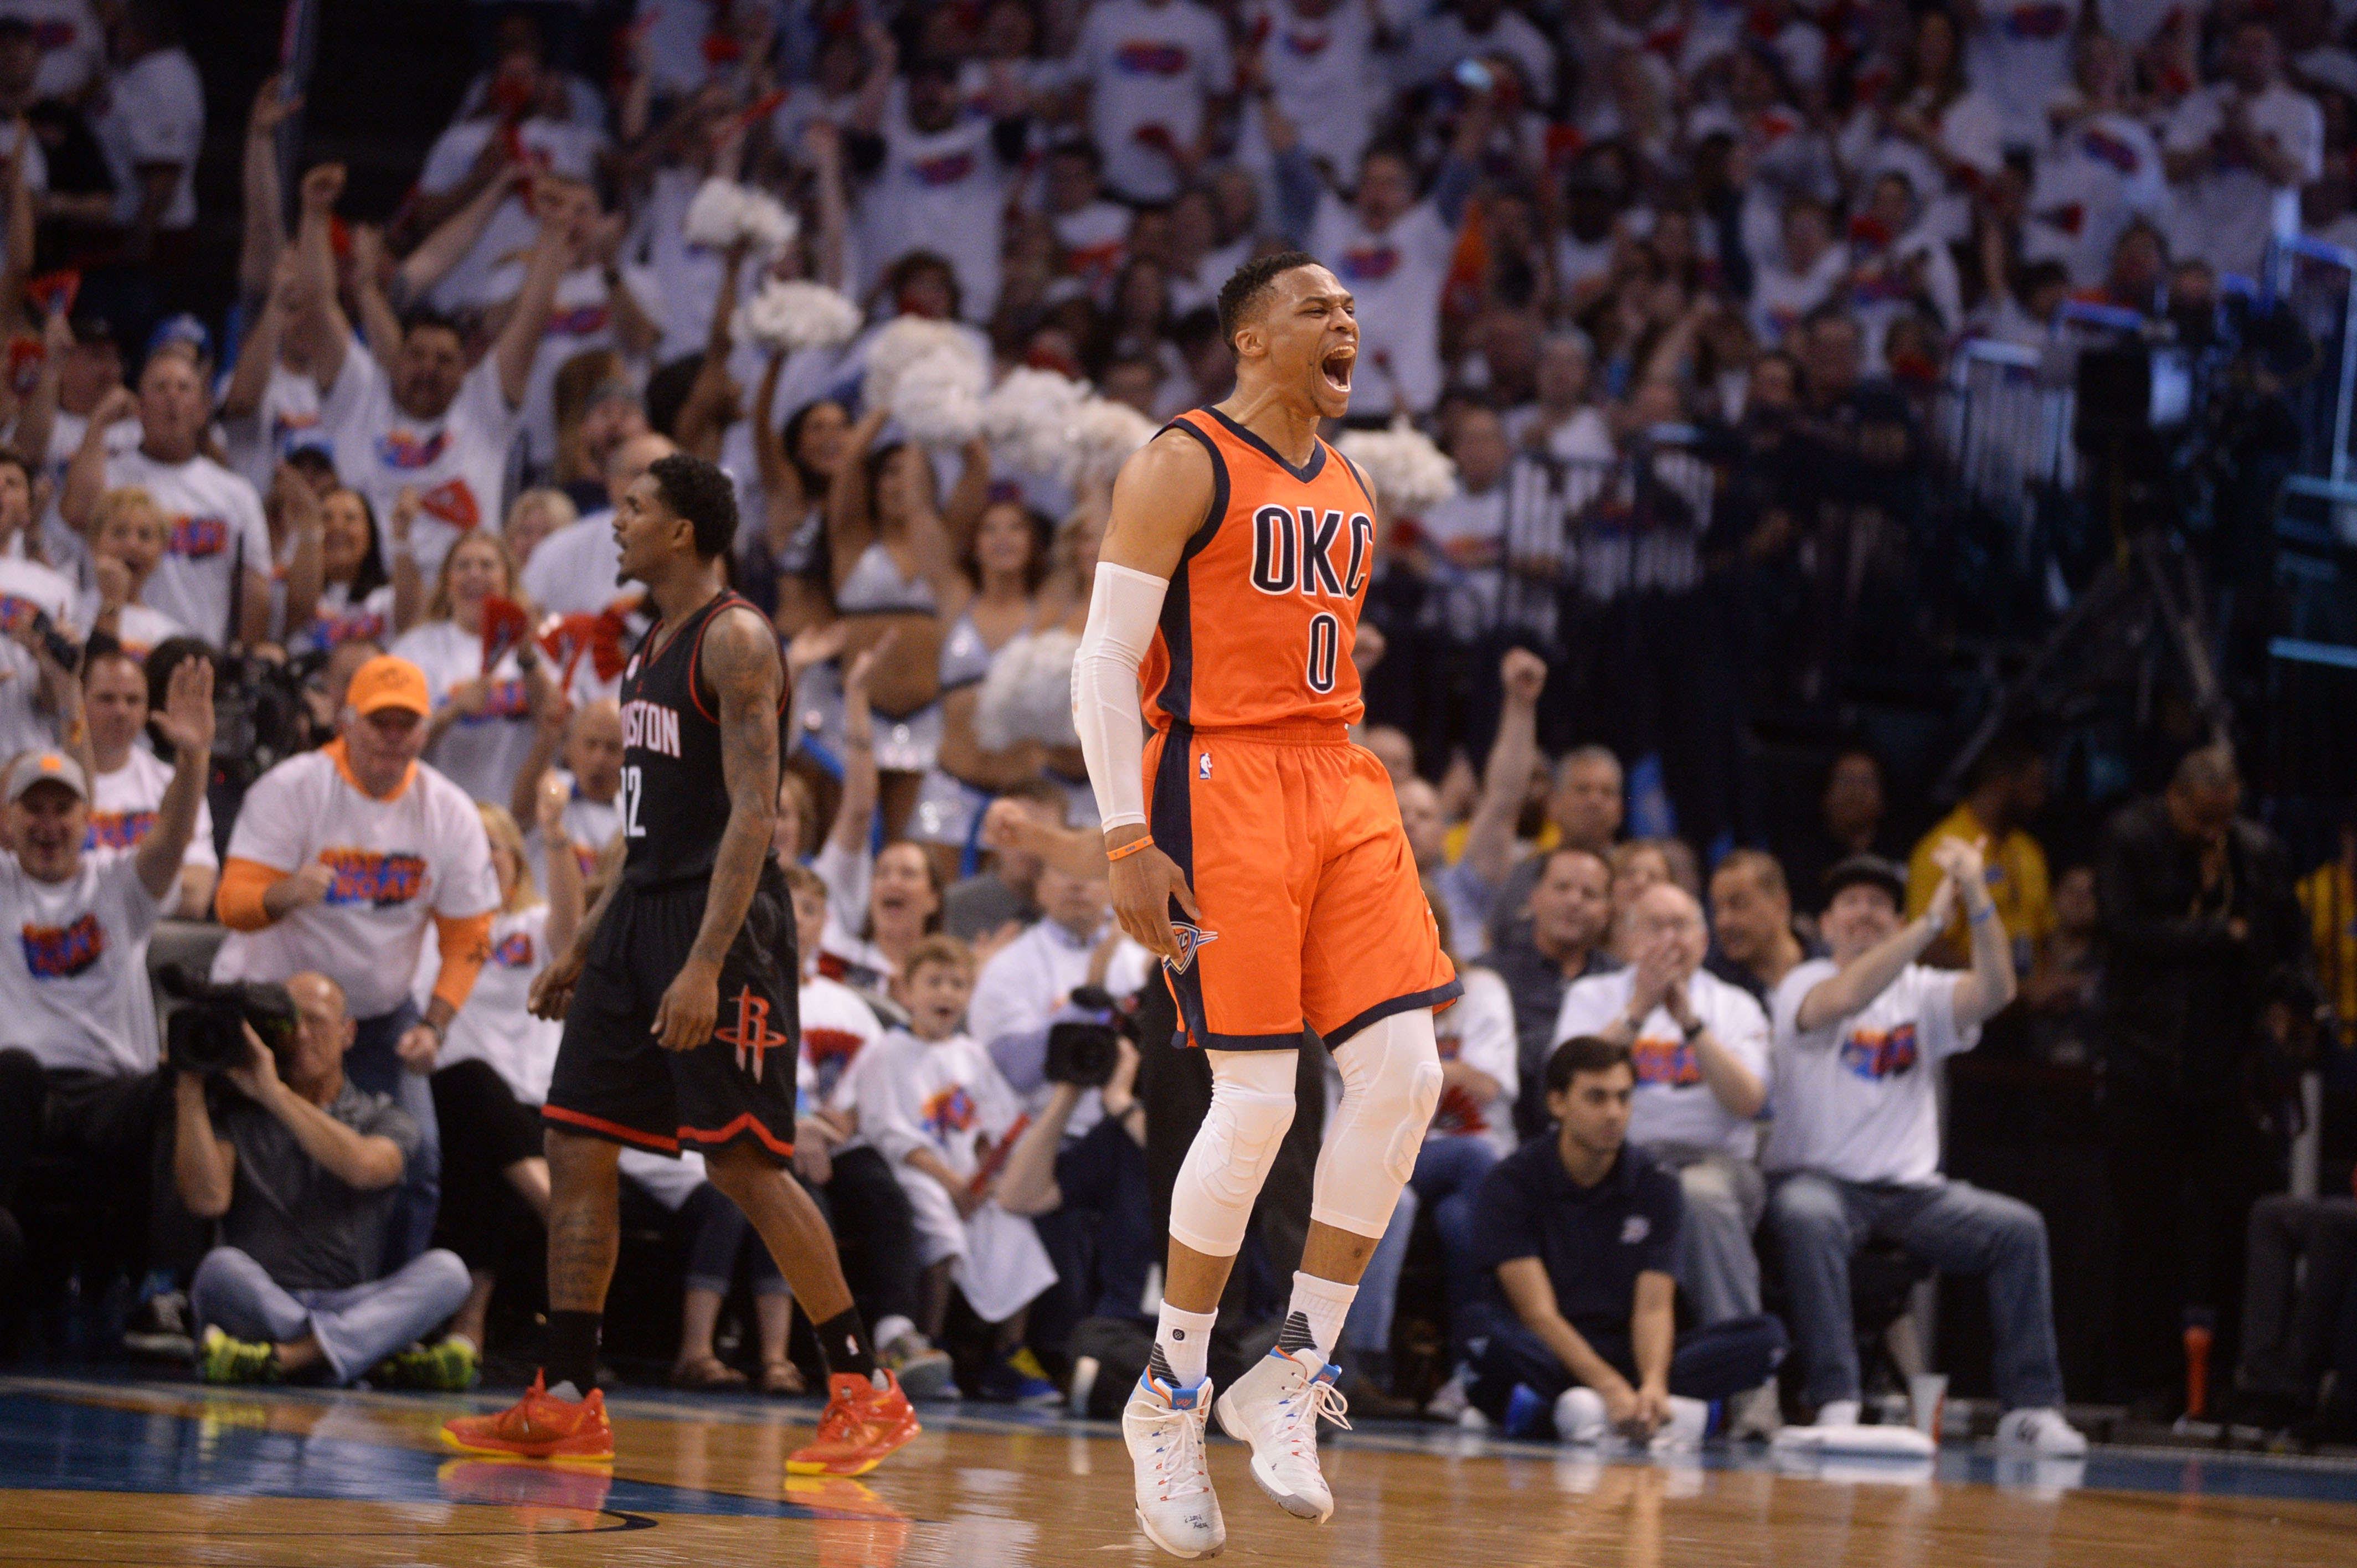 Apr 23, 2017 Oklahoma City, OK, USA Oklahoma City Thunder guard Russell  Westbrook (0) and Houston Rockets guard Lou Williams (12) react after a  play ...